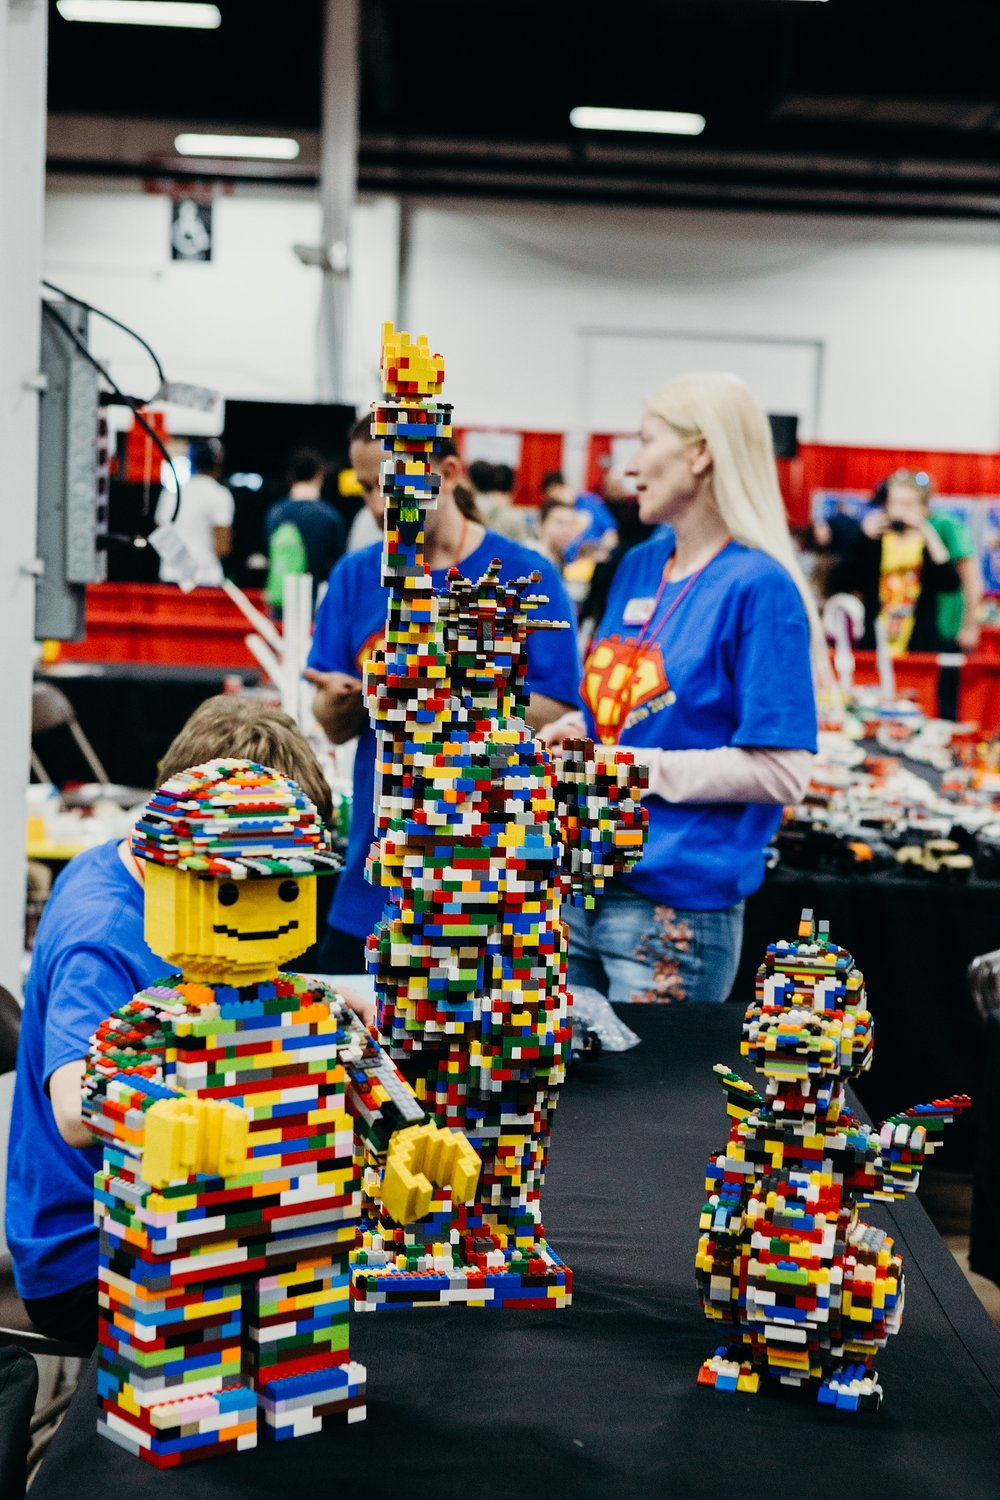 Joe_mac_Creative_Photography_Lego_Convention_Expo_Philadelphia__0022.jpg